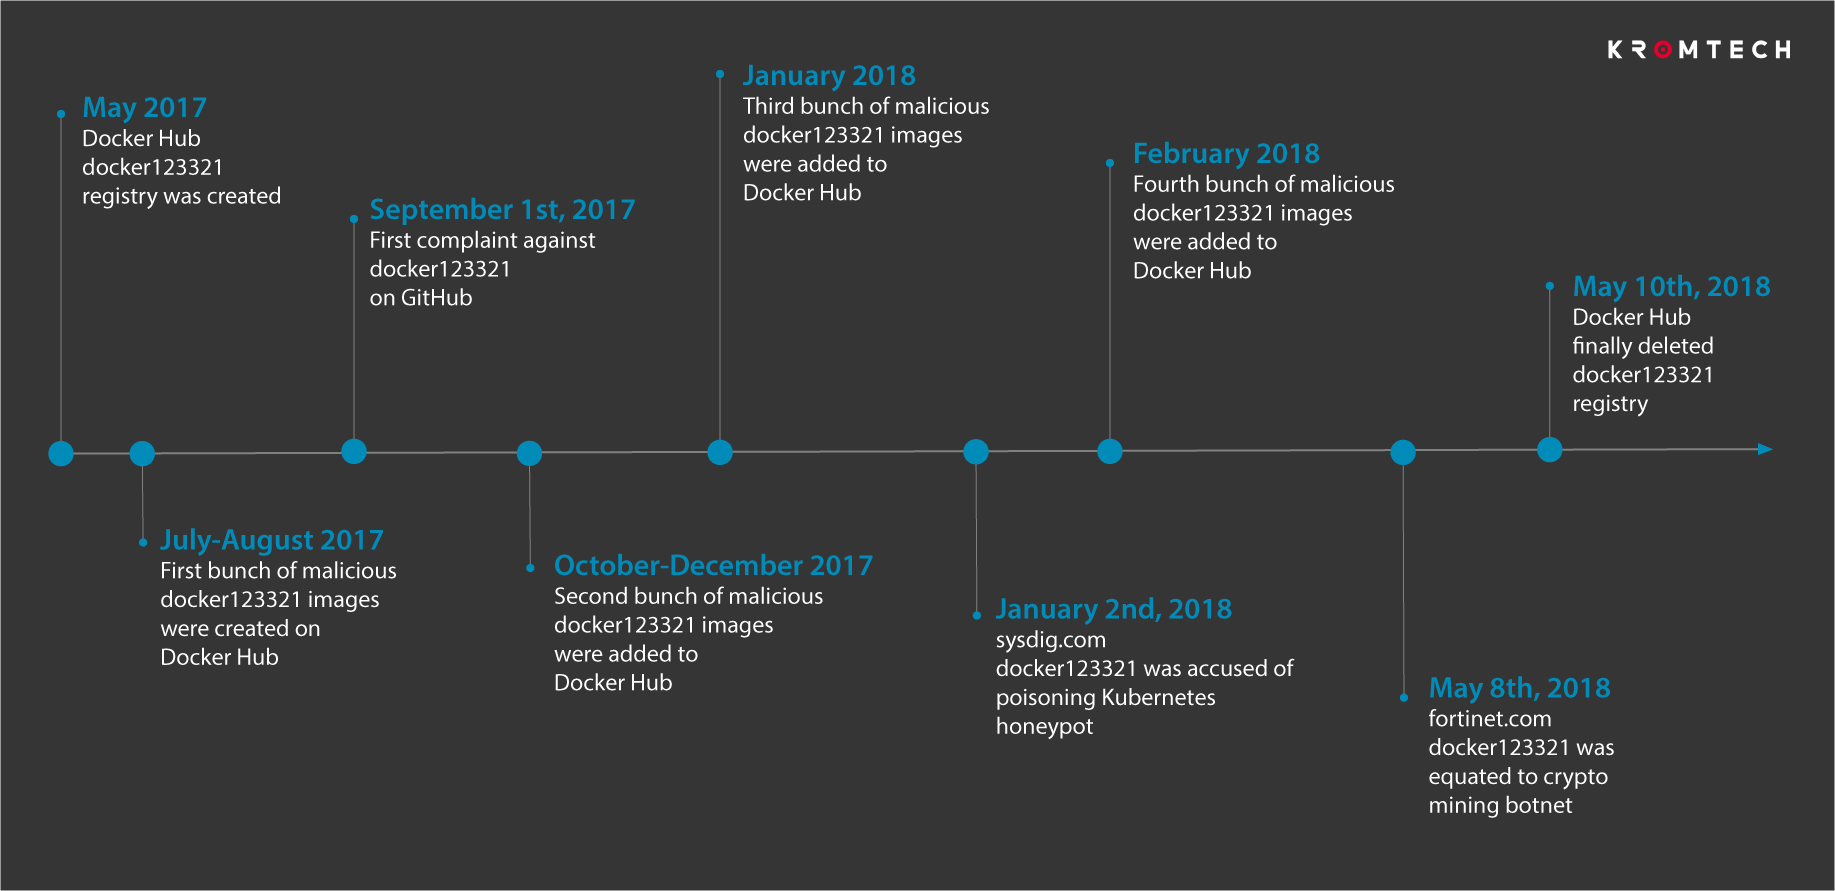 Timeline of malicious docker123321 registry lifecycle